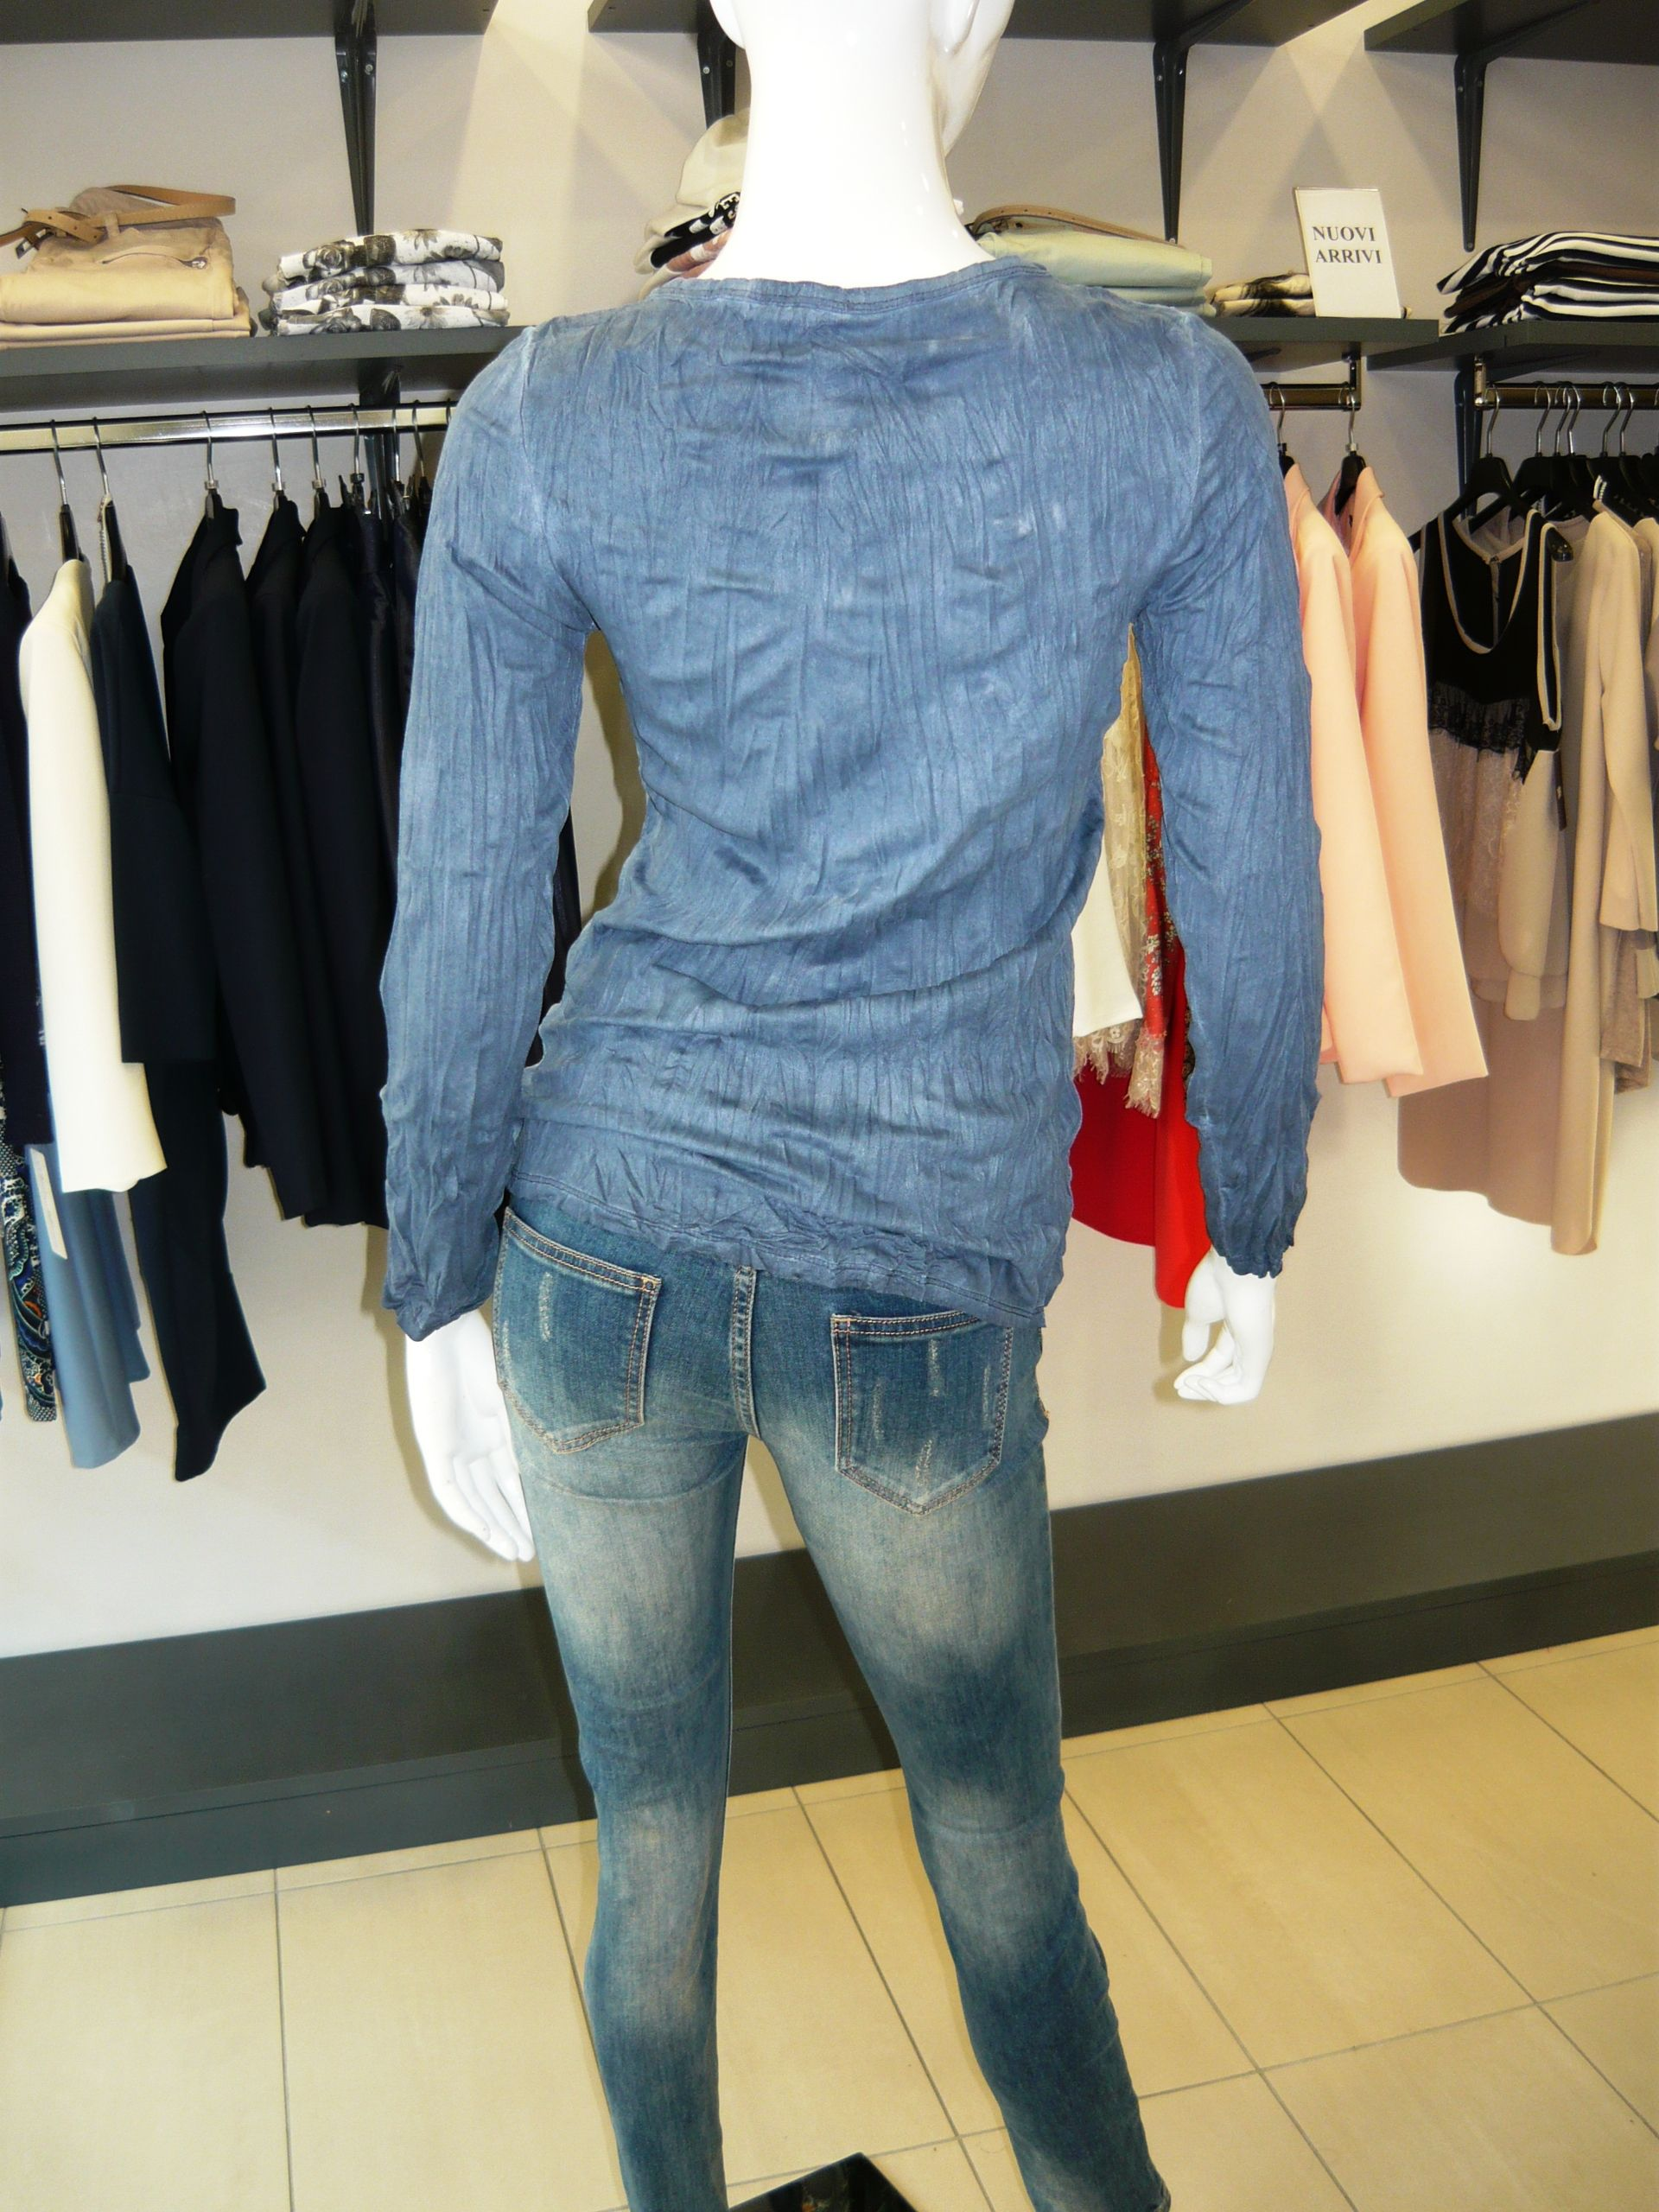 new arrivals ..t-shirt €24 jeans €38 giacca €35 .. #spring #summer #collection 2015 .... #swagstoretimodellalavita #swagstore #swag